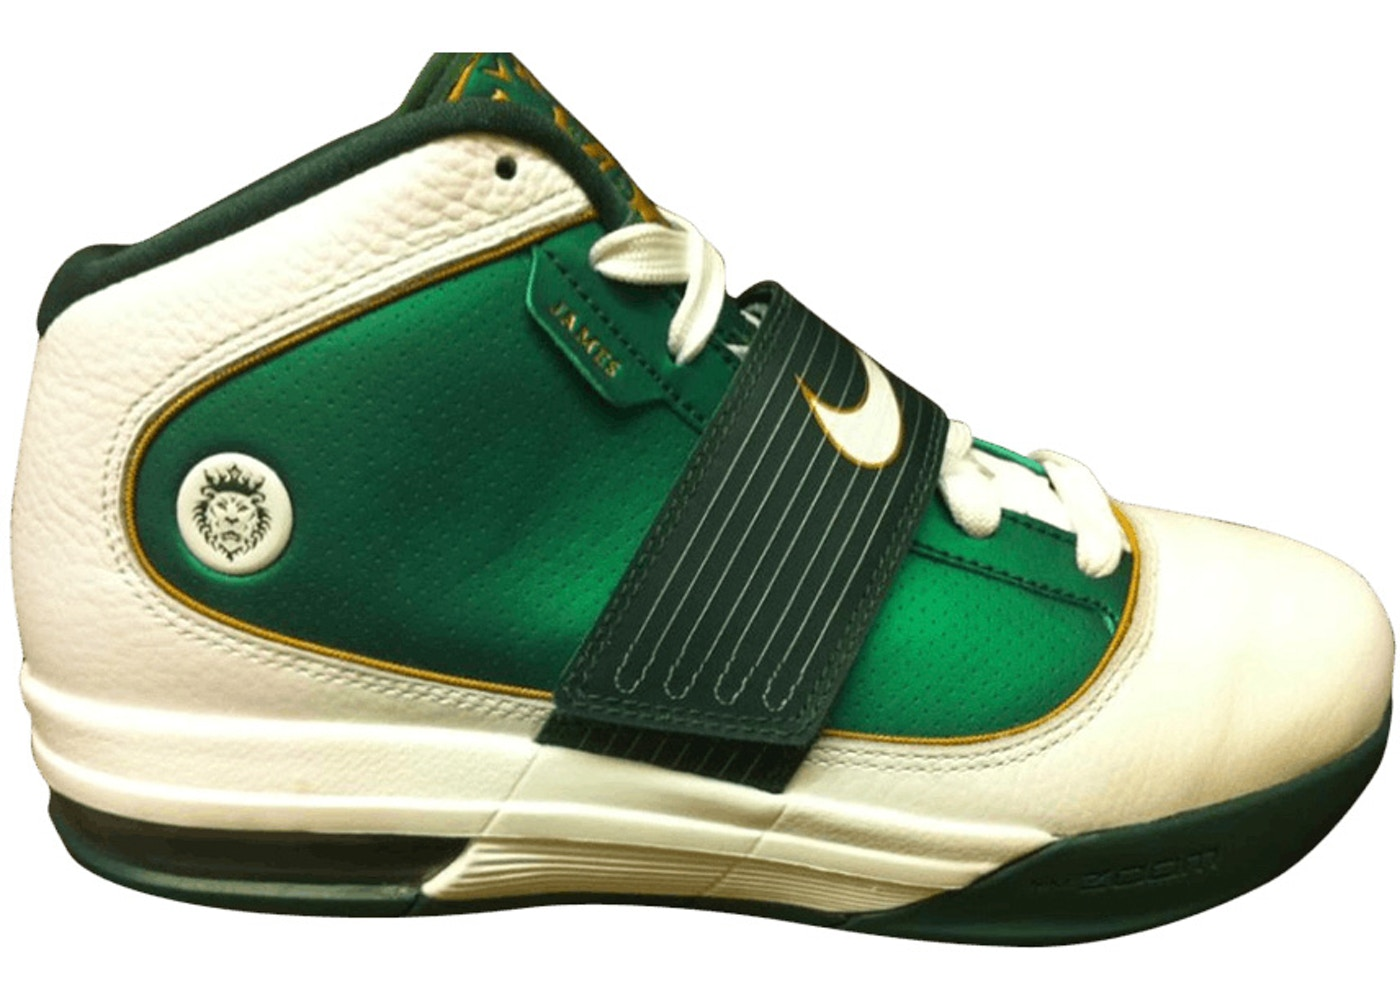 separation shoes 66f2f 48685 Nike Zoom Soldier 4 SVSM